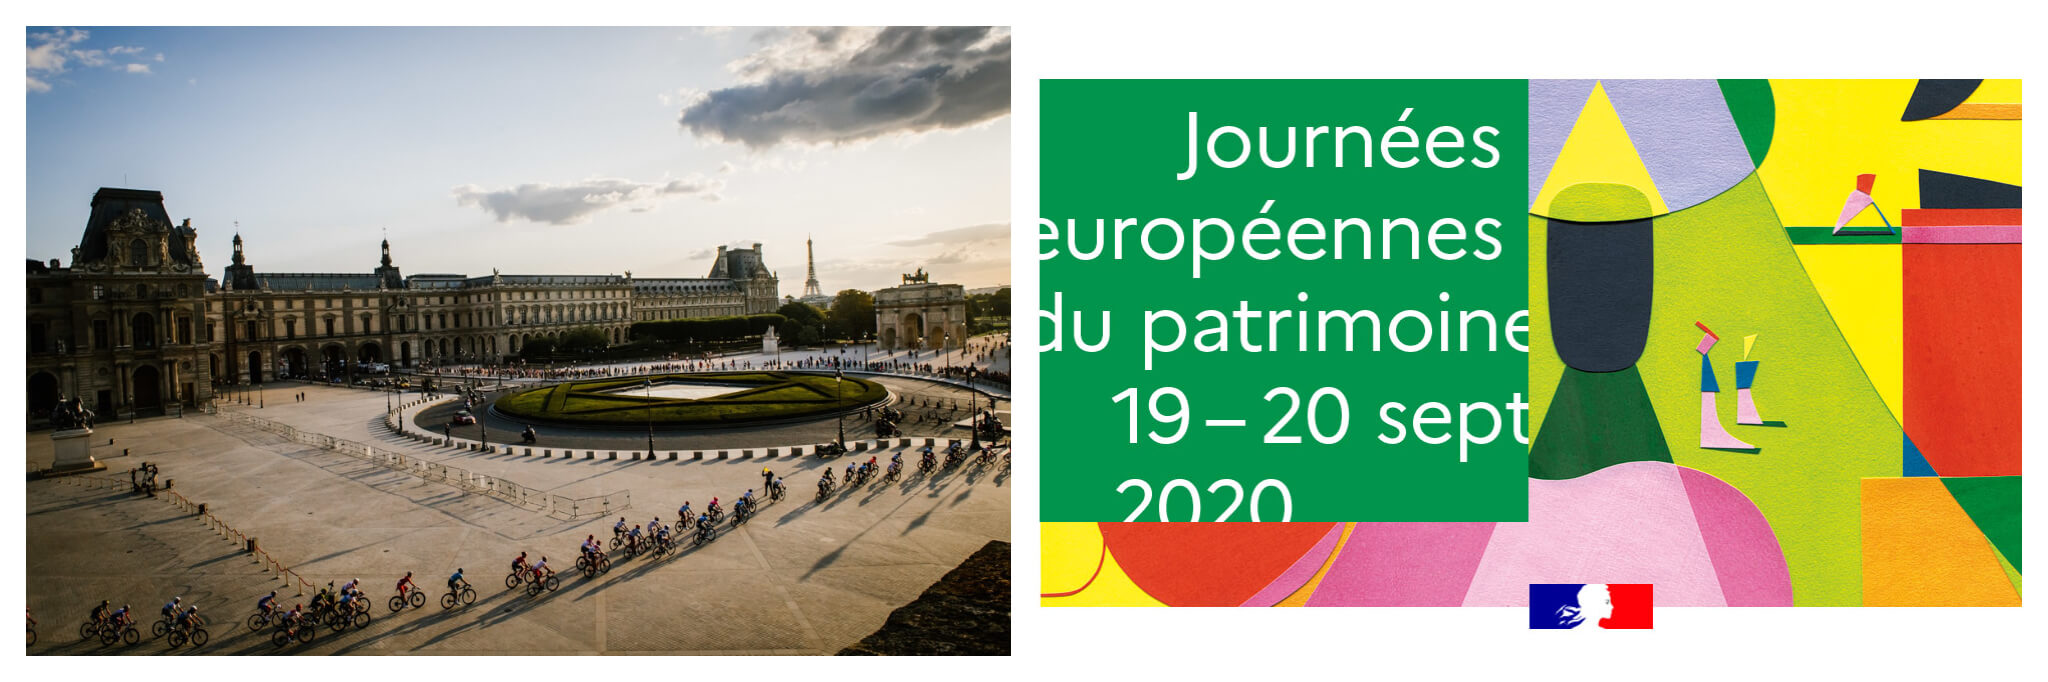 On the left is a view of Paris including the Louvre and the Eiffel Tower in the background. Cyclists ride through the courtyard of Louvre during the Tour de France. On the right is a brightly colored flyer for Journées européennes du patrimoine.